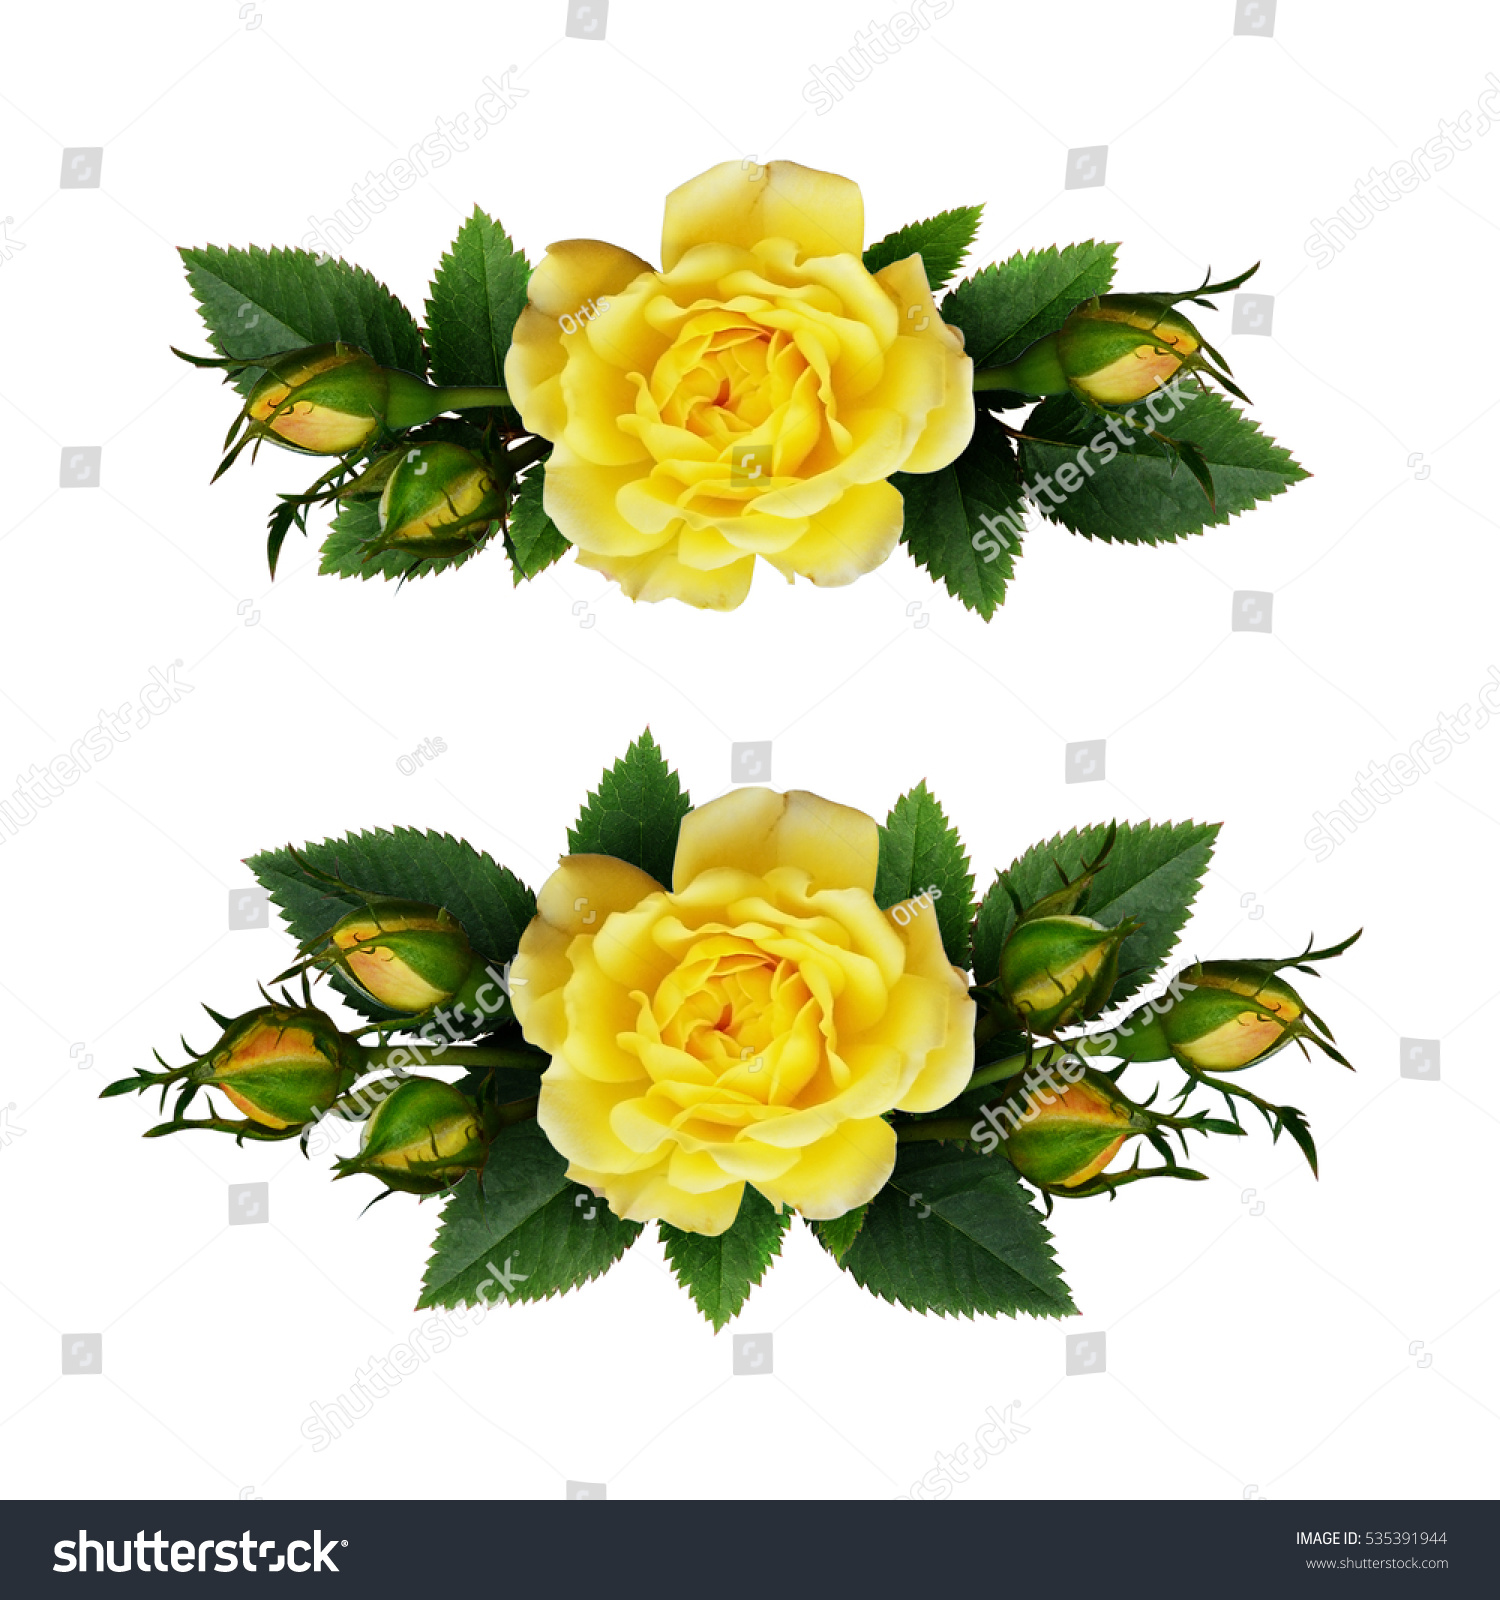 Yellow Rose Flowers Arrangements Isolated On White Ez Canvas